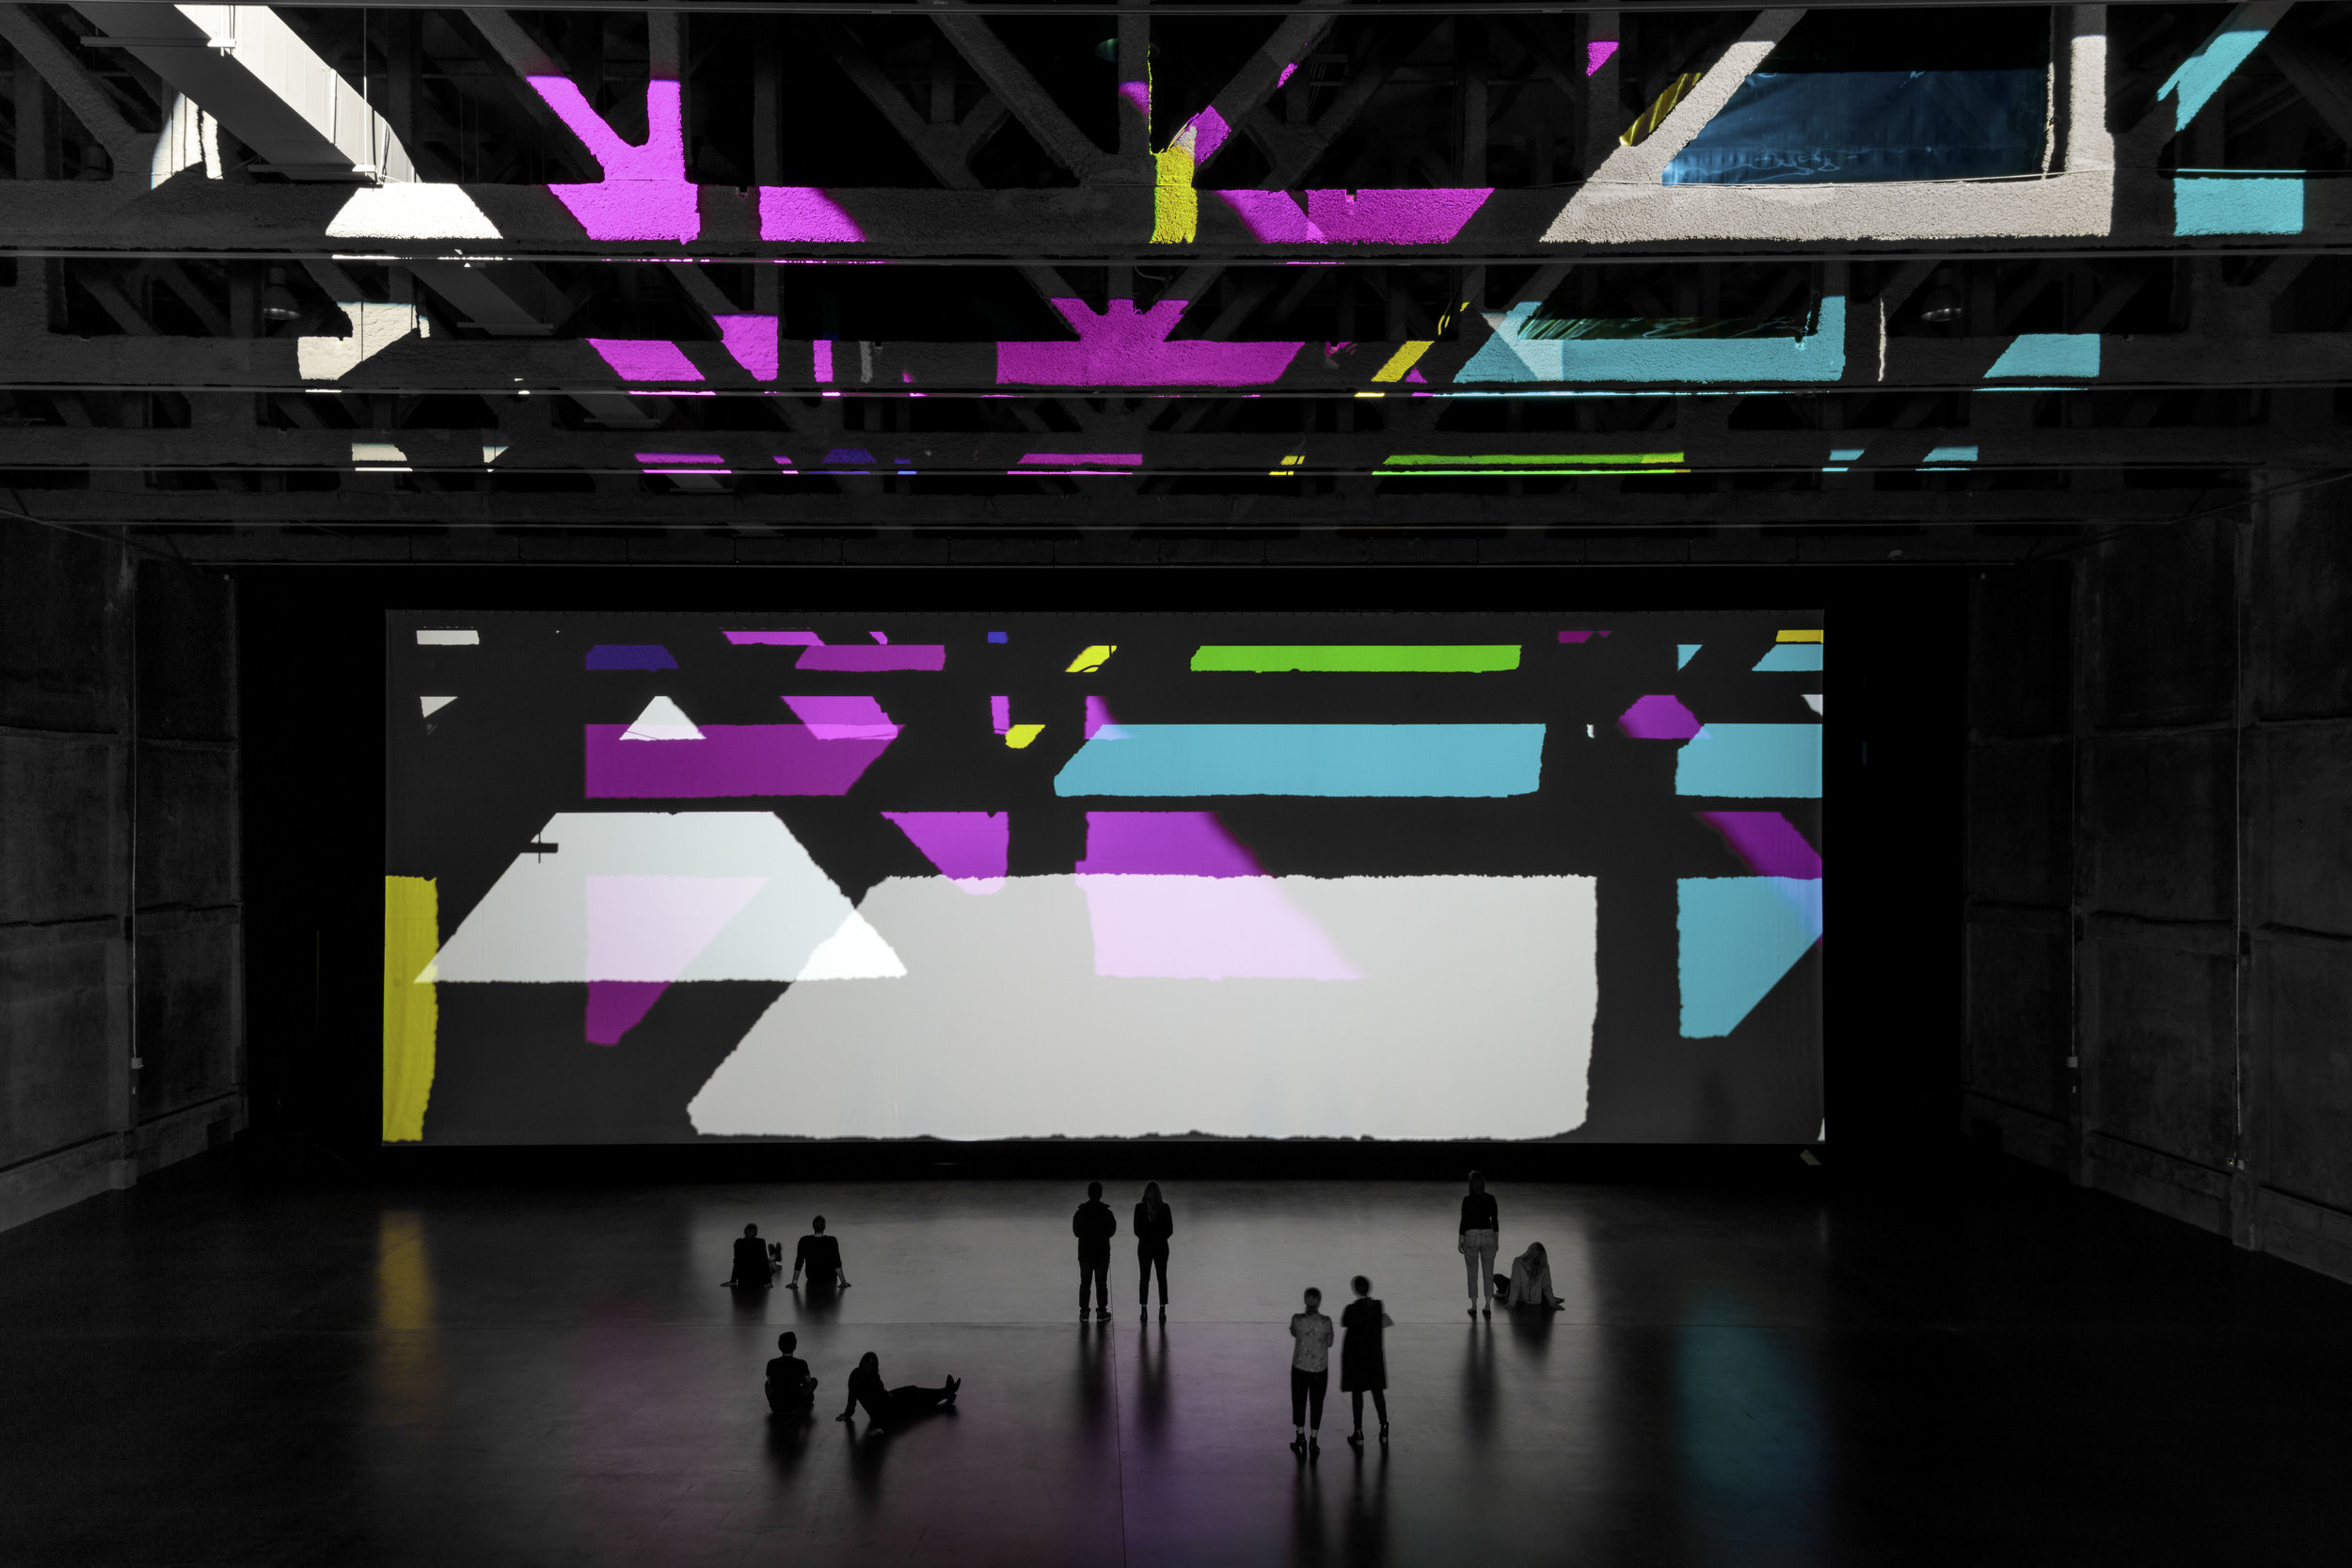 """OLAFUR ELIASSON. """"REALITY PROJECTOR"""" (2018). LIGHT AND SOUND INSTALLATION. COURTESY MARCIANO ART FOUNDATION. PHOTOGRAPH BY JOSHUA WHITE / JWPICTURES.COM."""